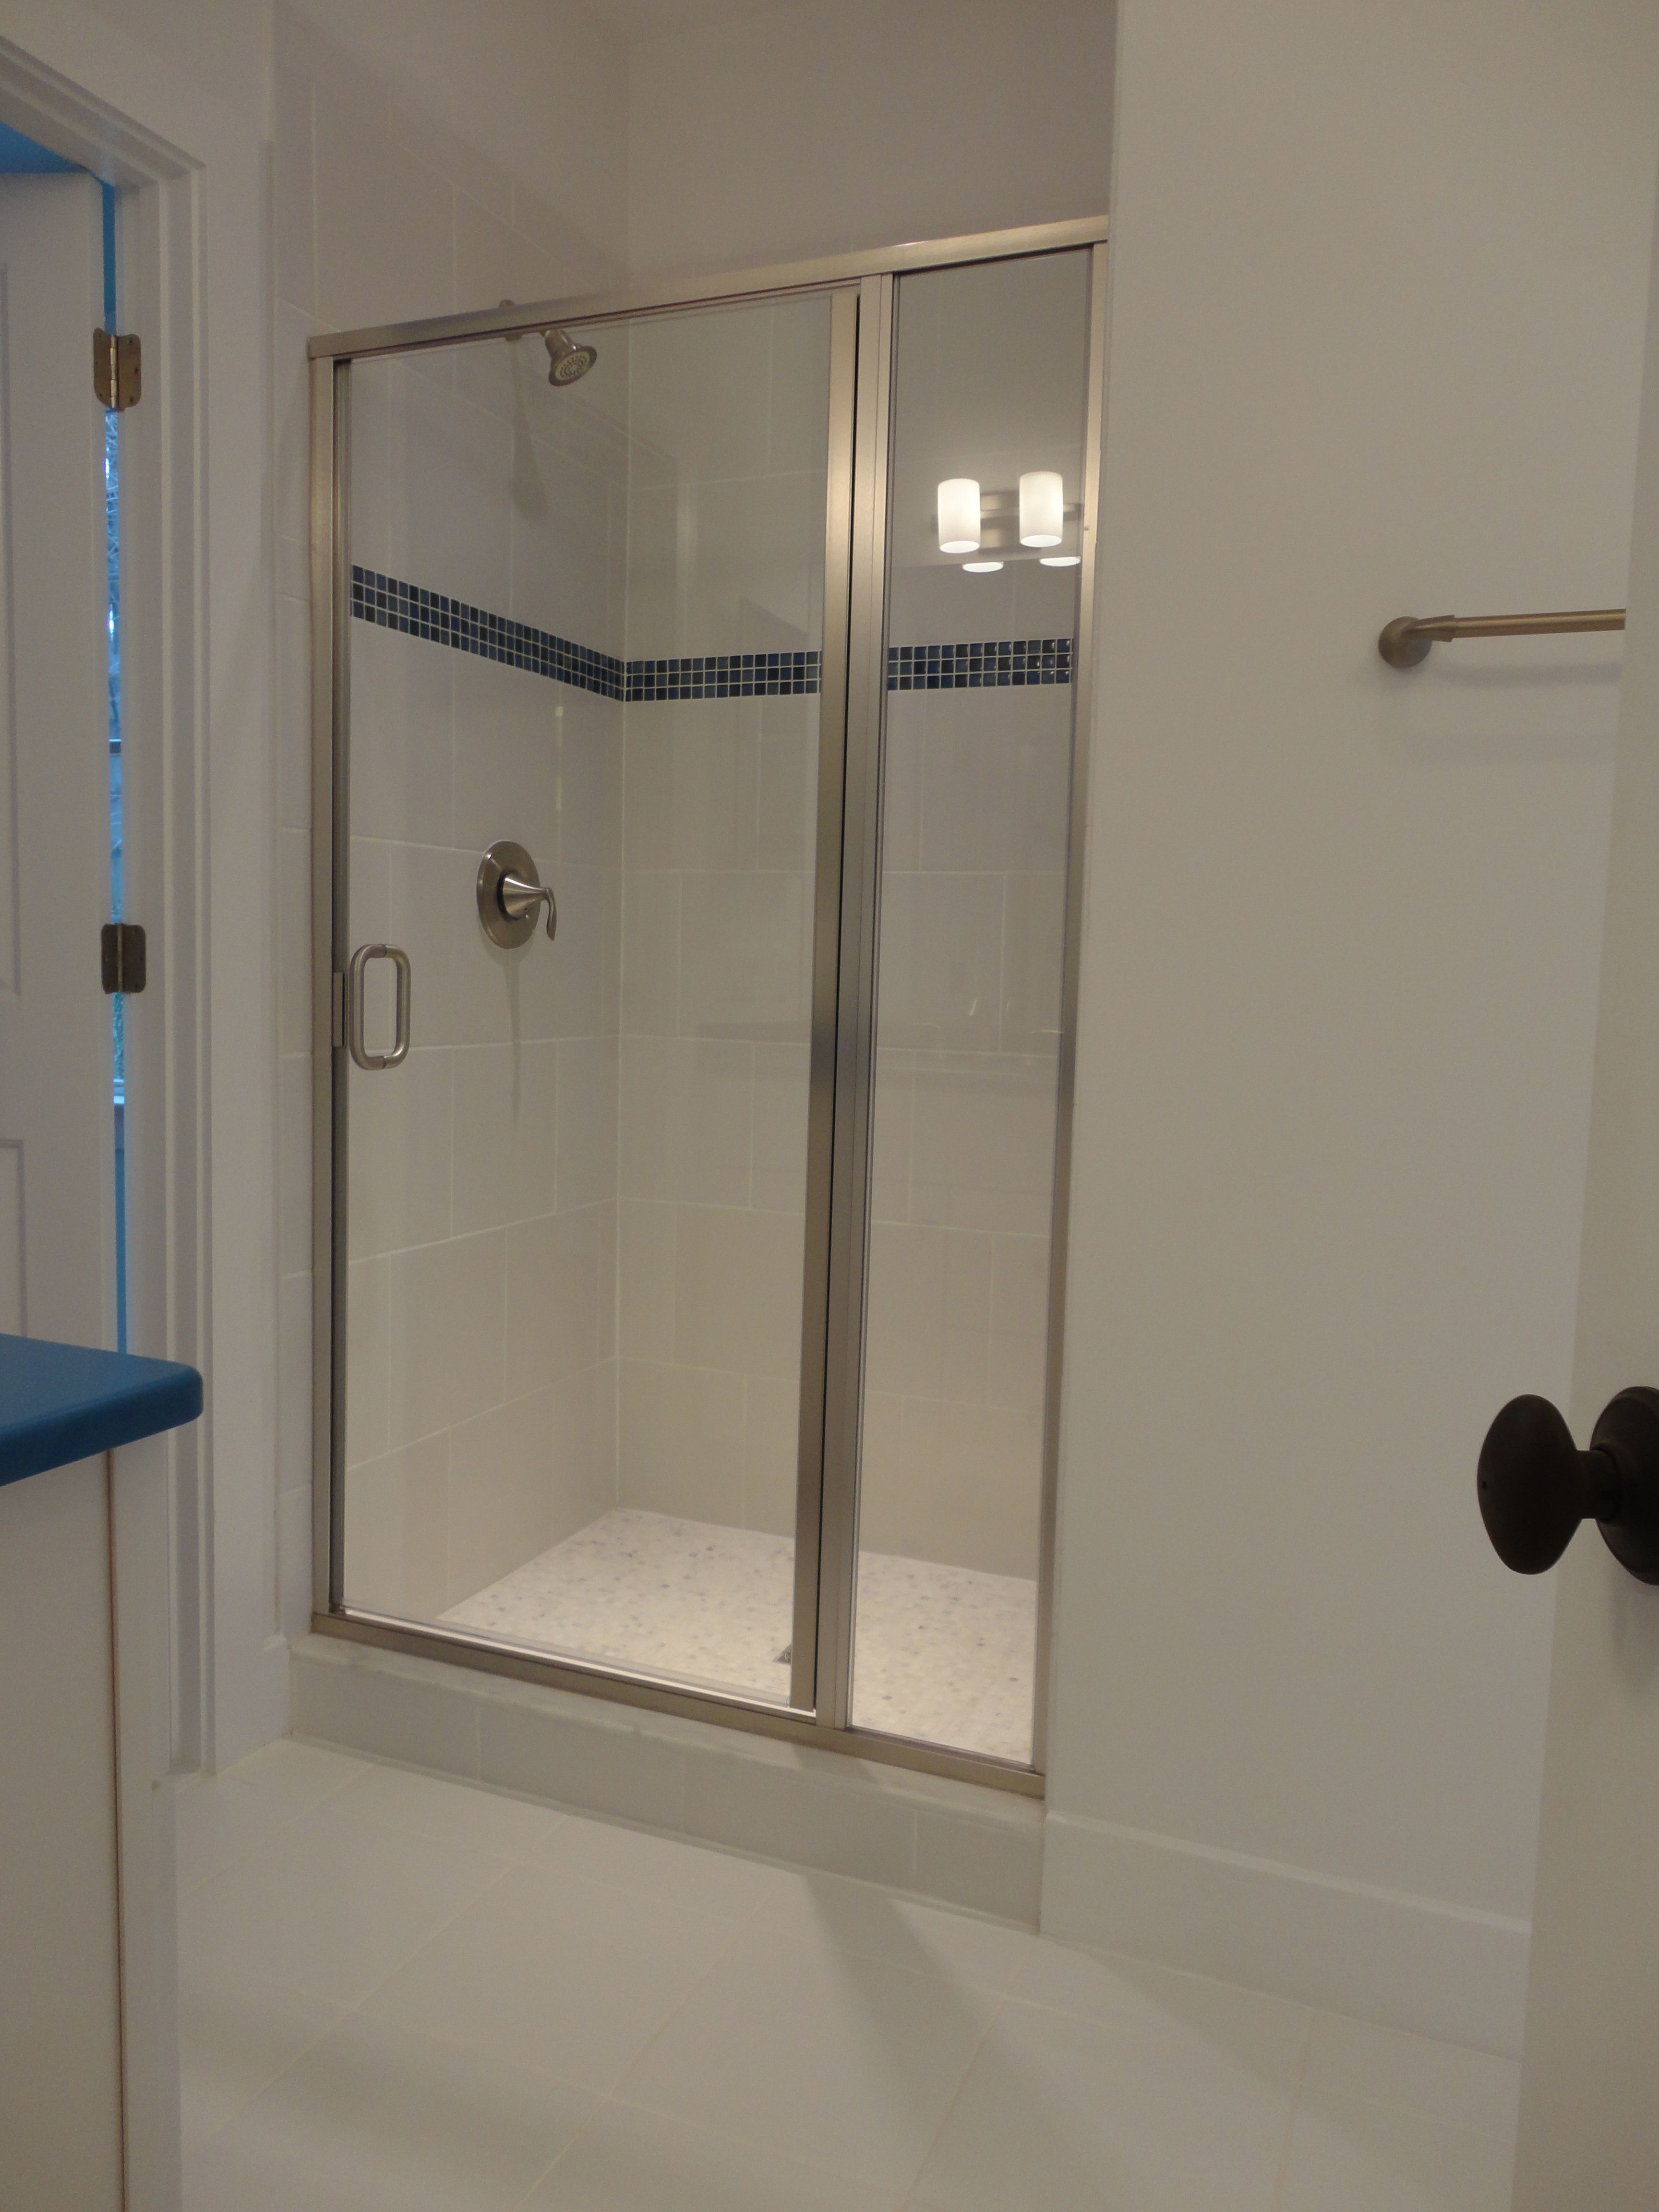 Semi Frameless Shower Door Opening Edges Of Glass On The Door Has No Frame And Comes With Pull Handle G Semi Frameless Shower Doors Shower Doors Glass Shower